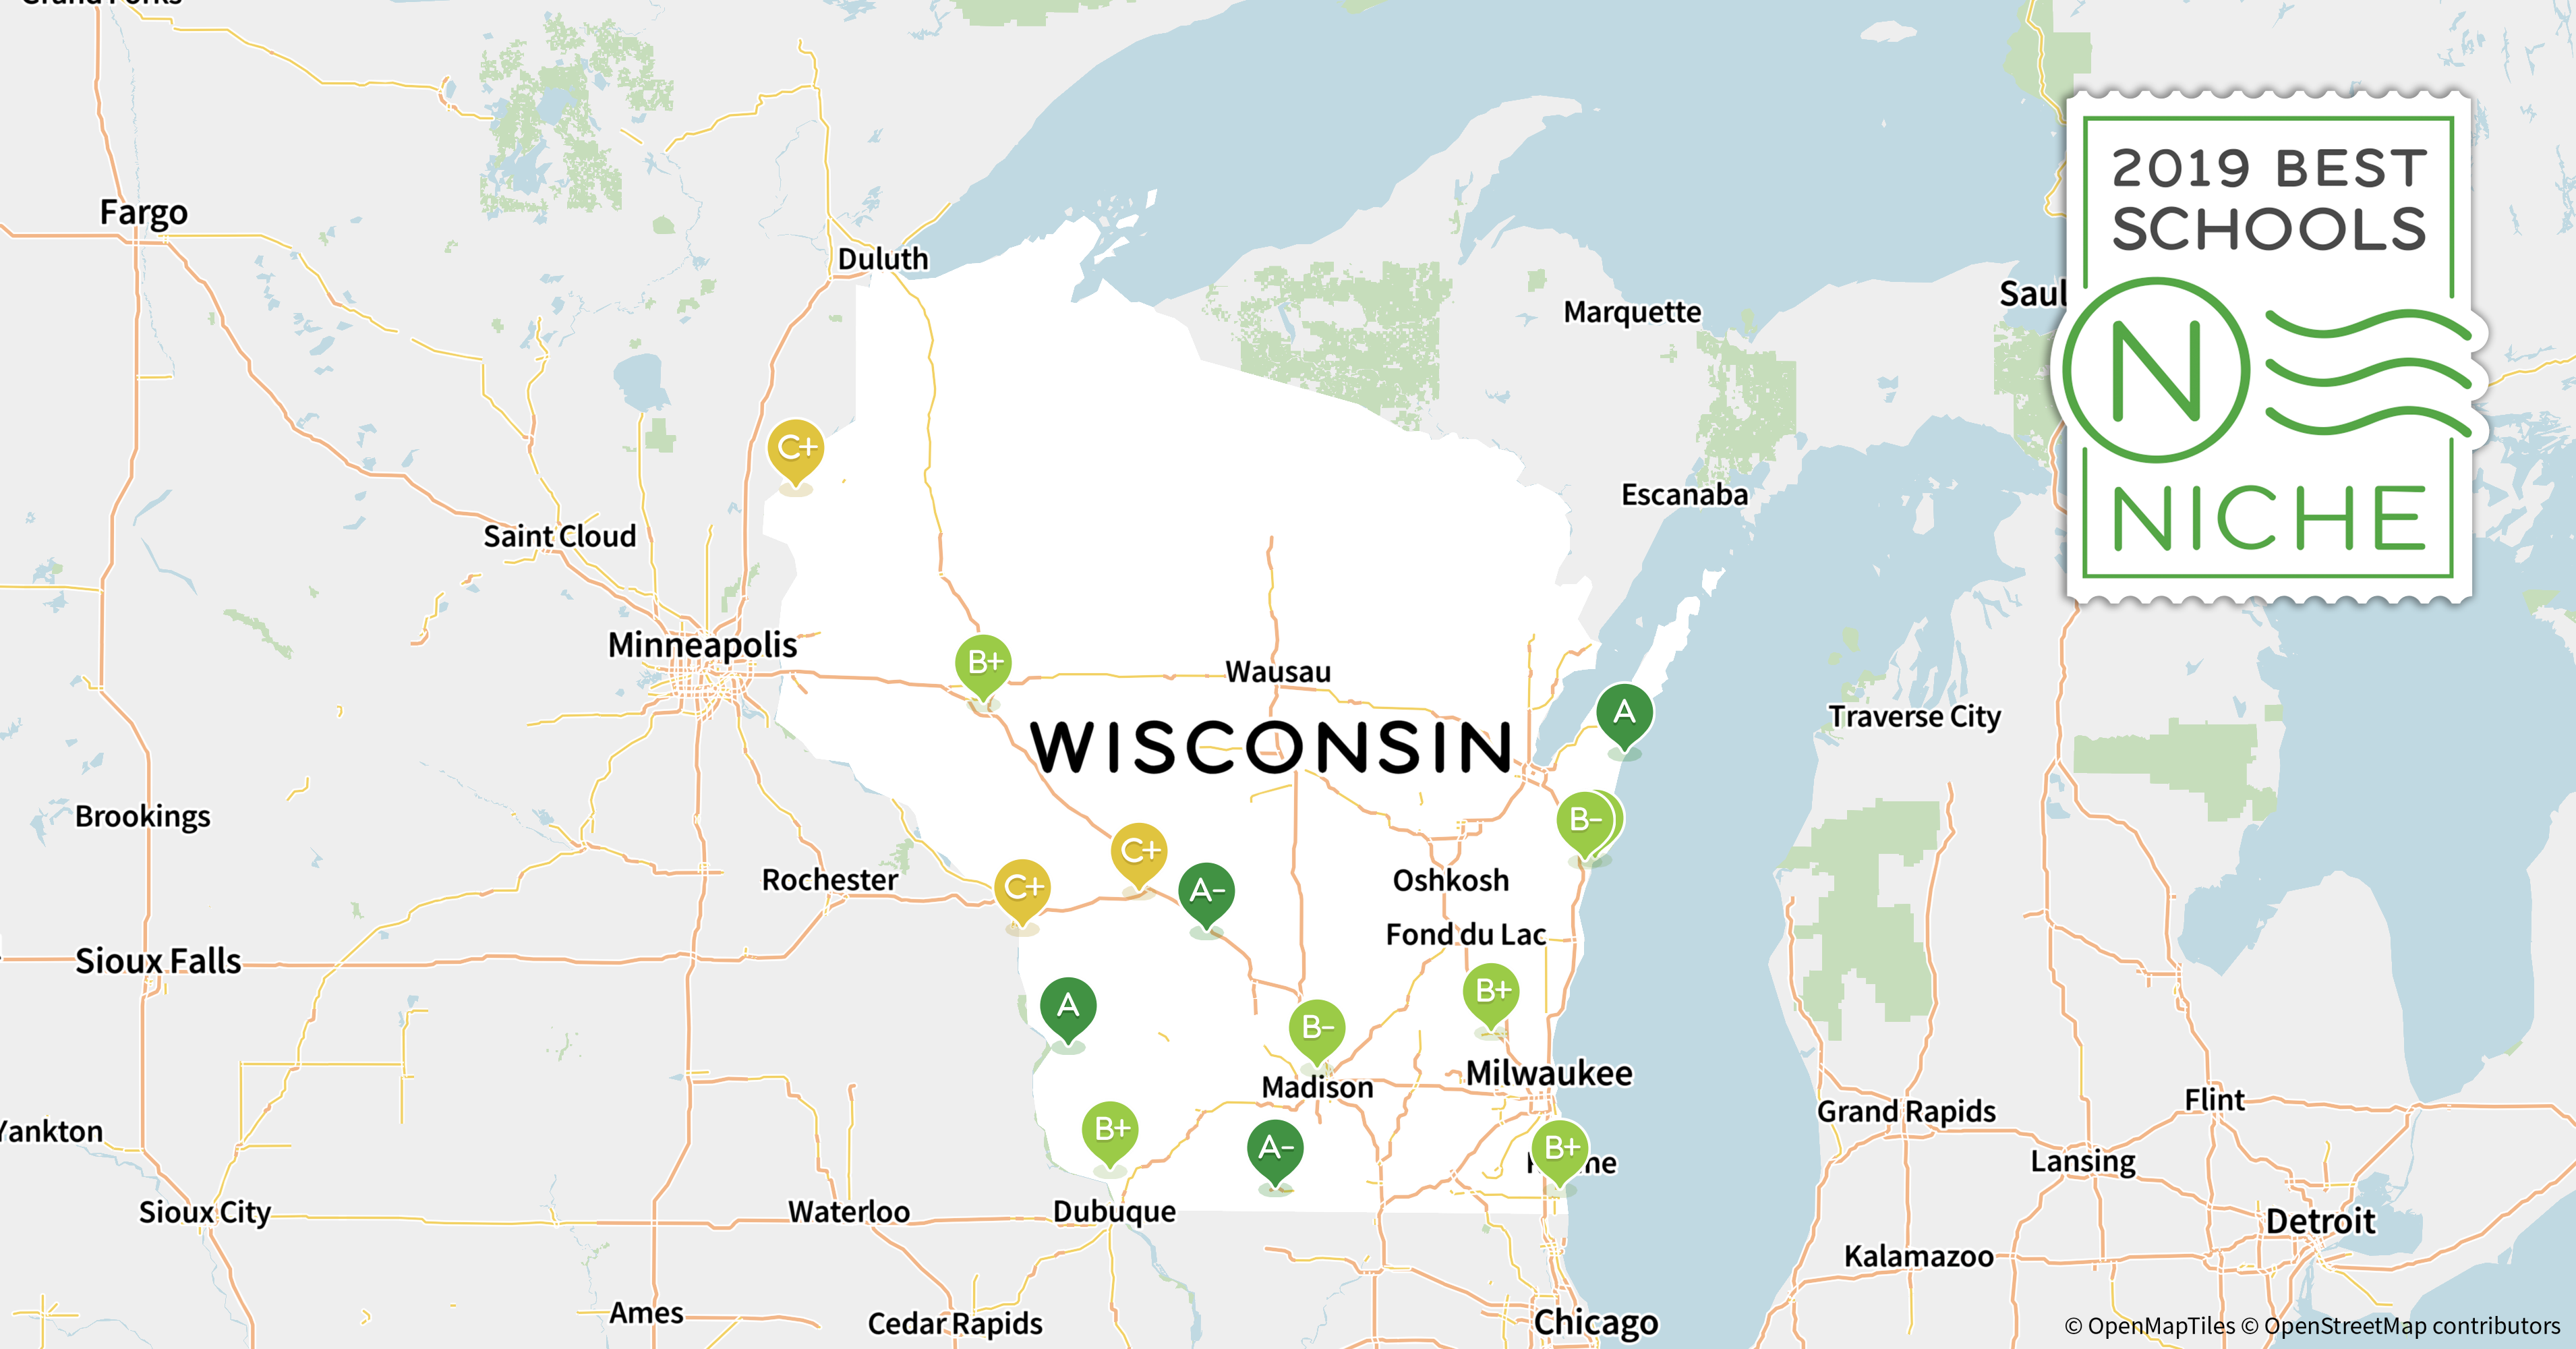 Sussex Wisconsin Map.2019 Best School Districts In Wisconsin Niche